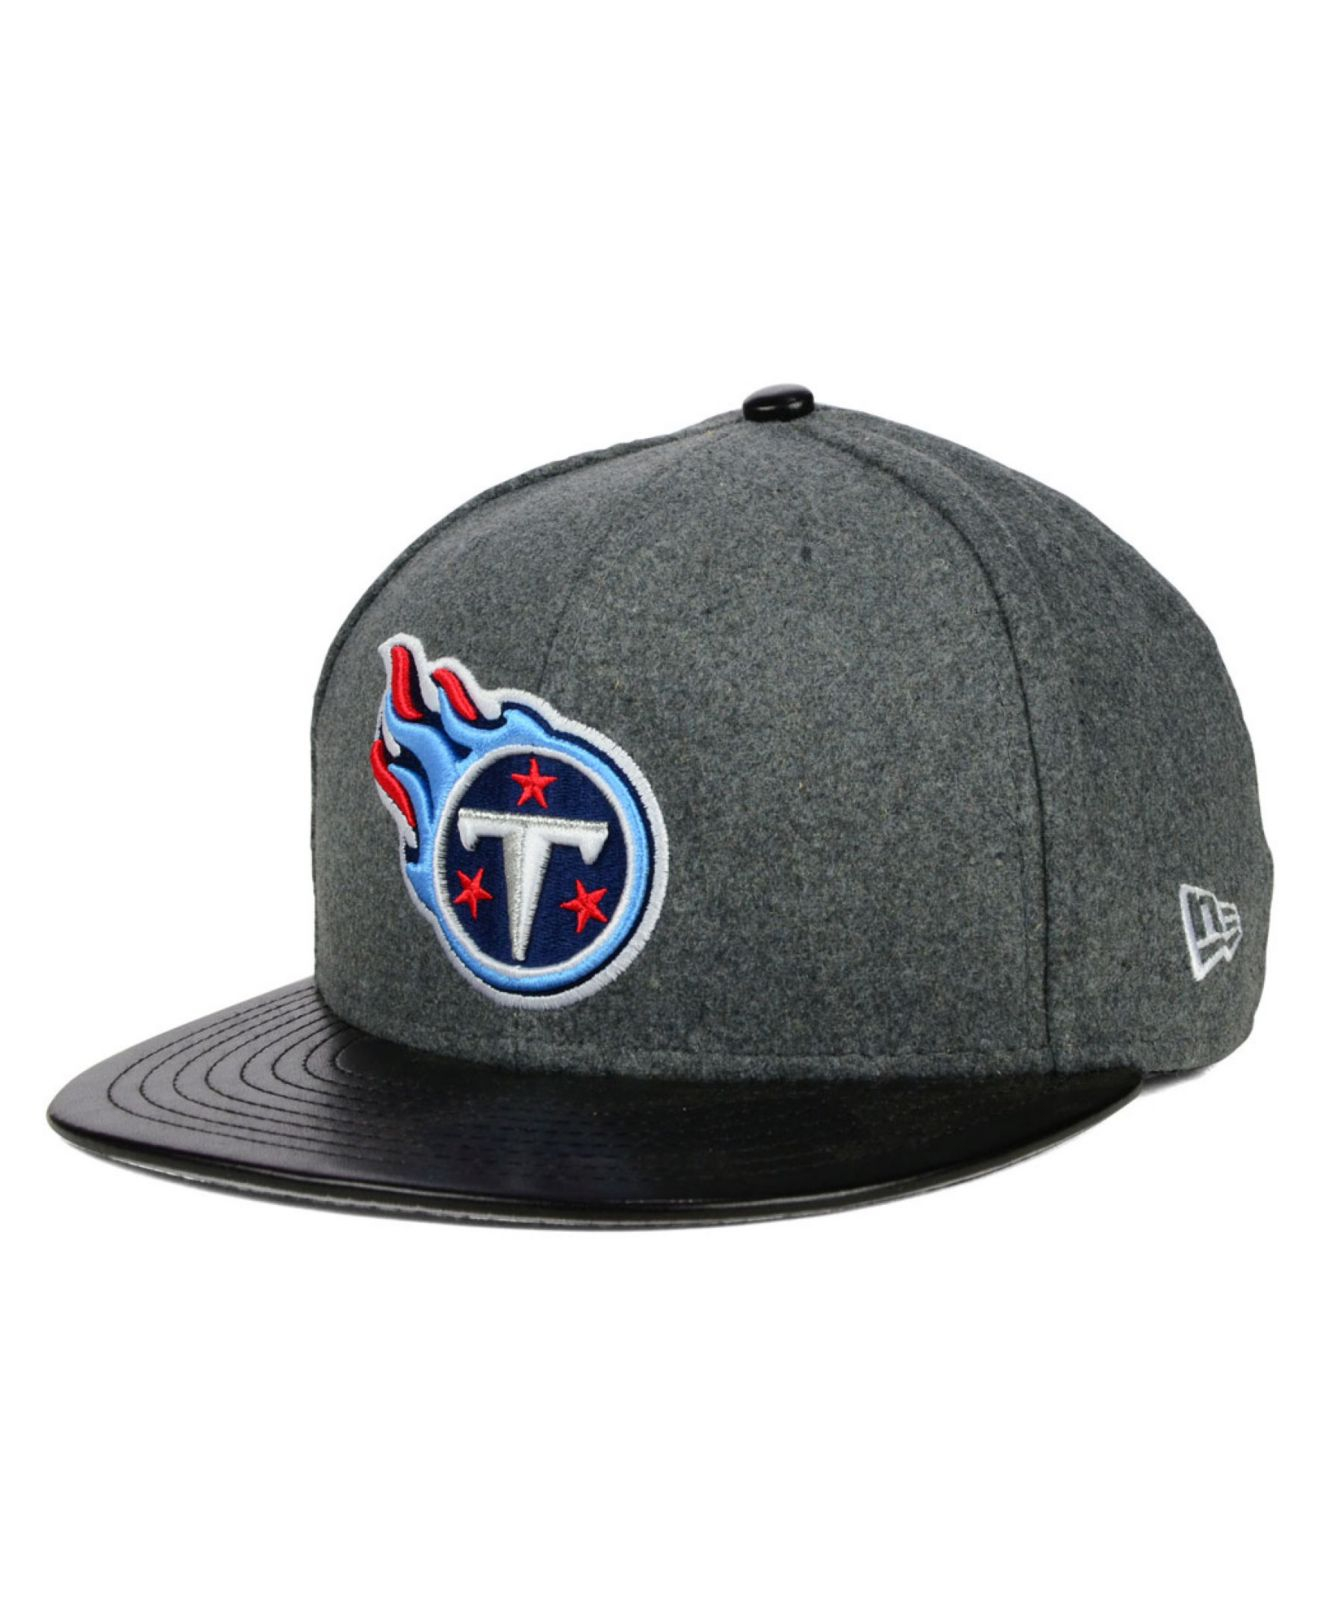 watch b2650 c7b9a ebay tennessee titans new era 2018 nfl draft official on stage 59fifty  fitted hat c0b46 c72df  switzerland lyst ktz tennessee titans leather  melton 59fifty ...